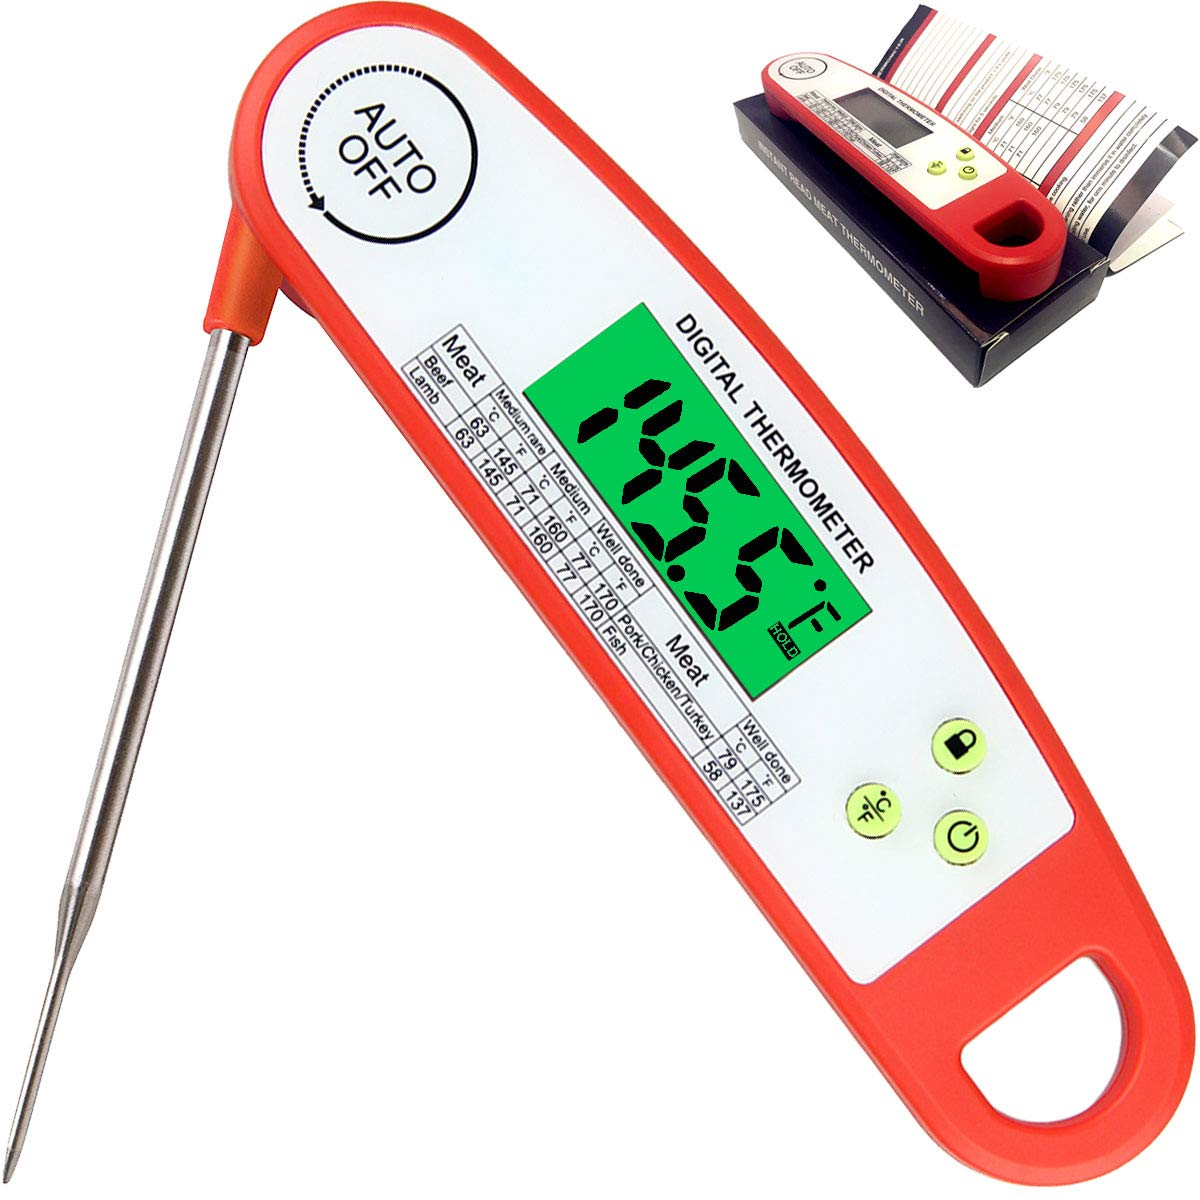 Meat Thermometers, Smart Auto On Off Meat Thermometer Instant Read Candy Thermometer Waterproof Digital Food Thermometer for Meat, Candy, Milk, Water, Grill Smoker Antonki